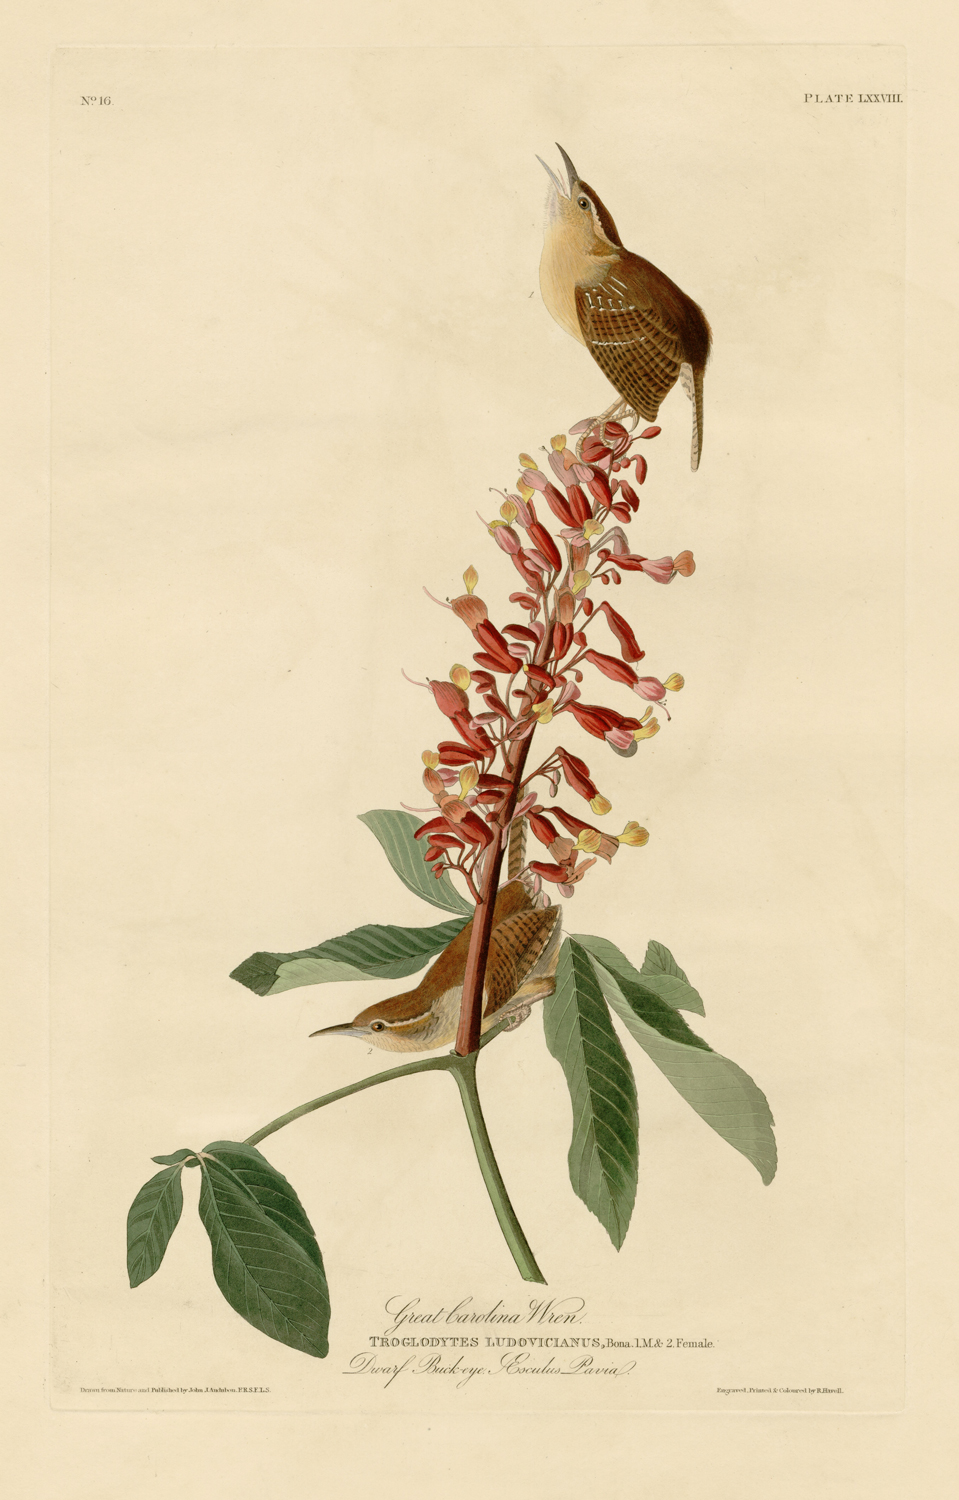 Great Carolina Wren - Plate 78 of Birds of America by John James Audubon